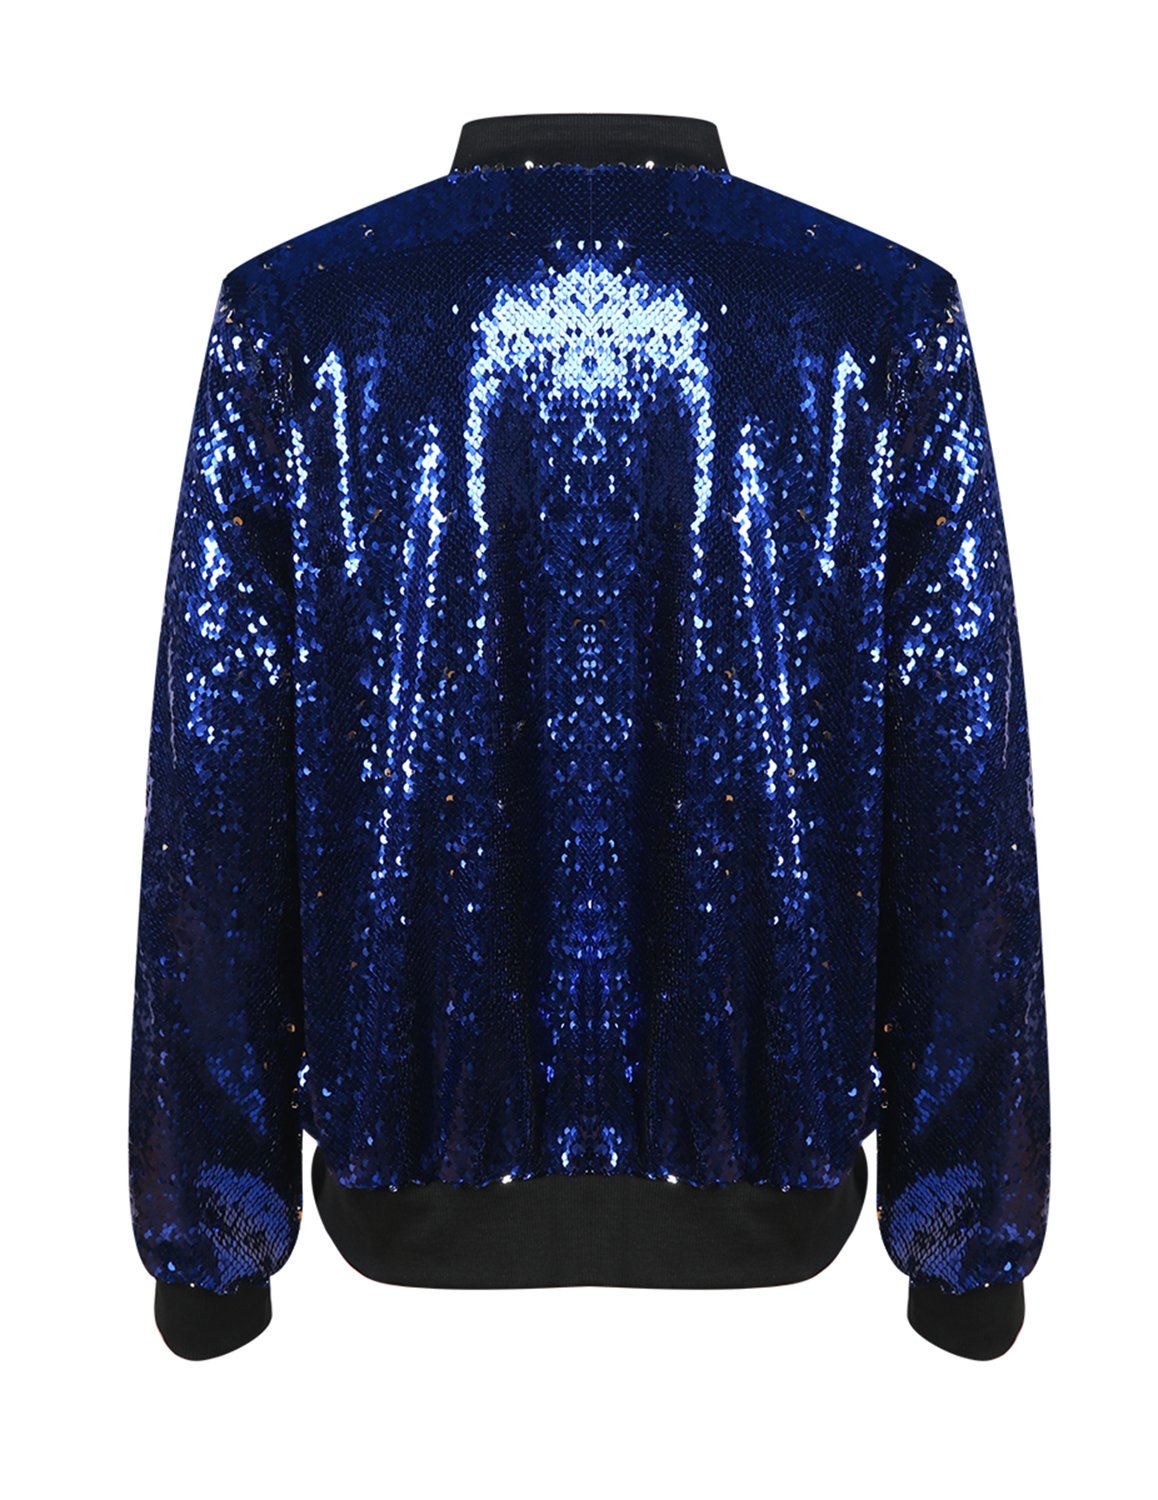 HaoDuoYi Womens Casual Lightweight Sequin Zipper Bomber Jacket (Large, Blue) by HaoDuoYi (Image #2)